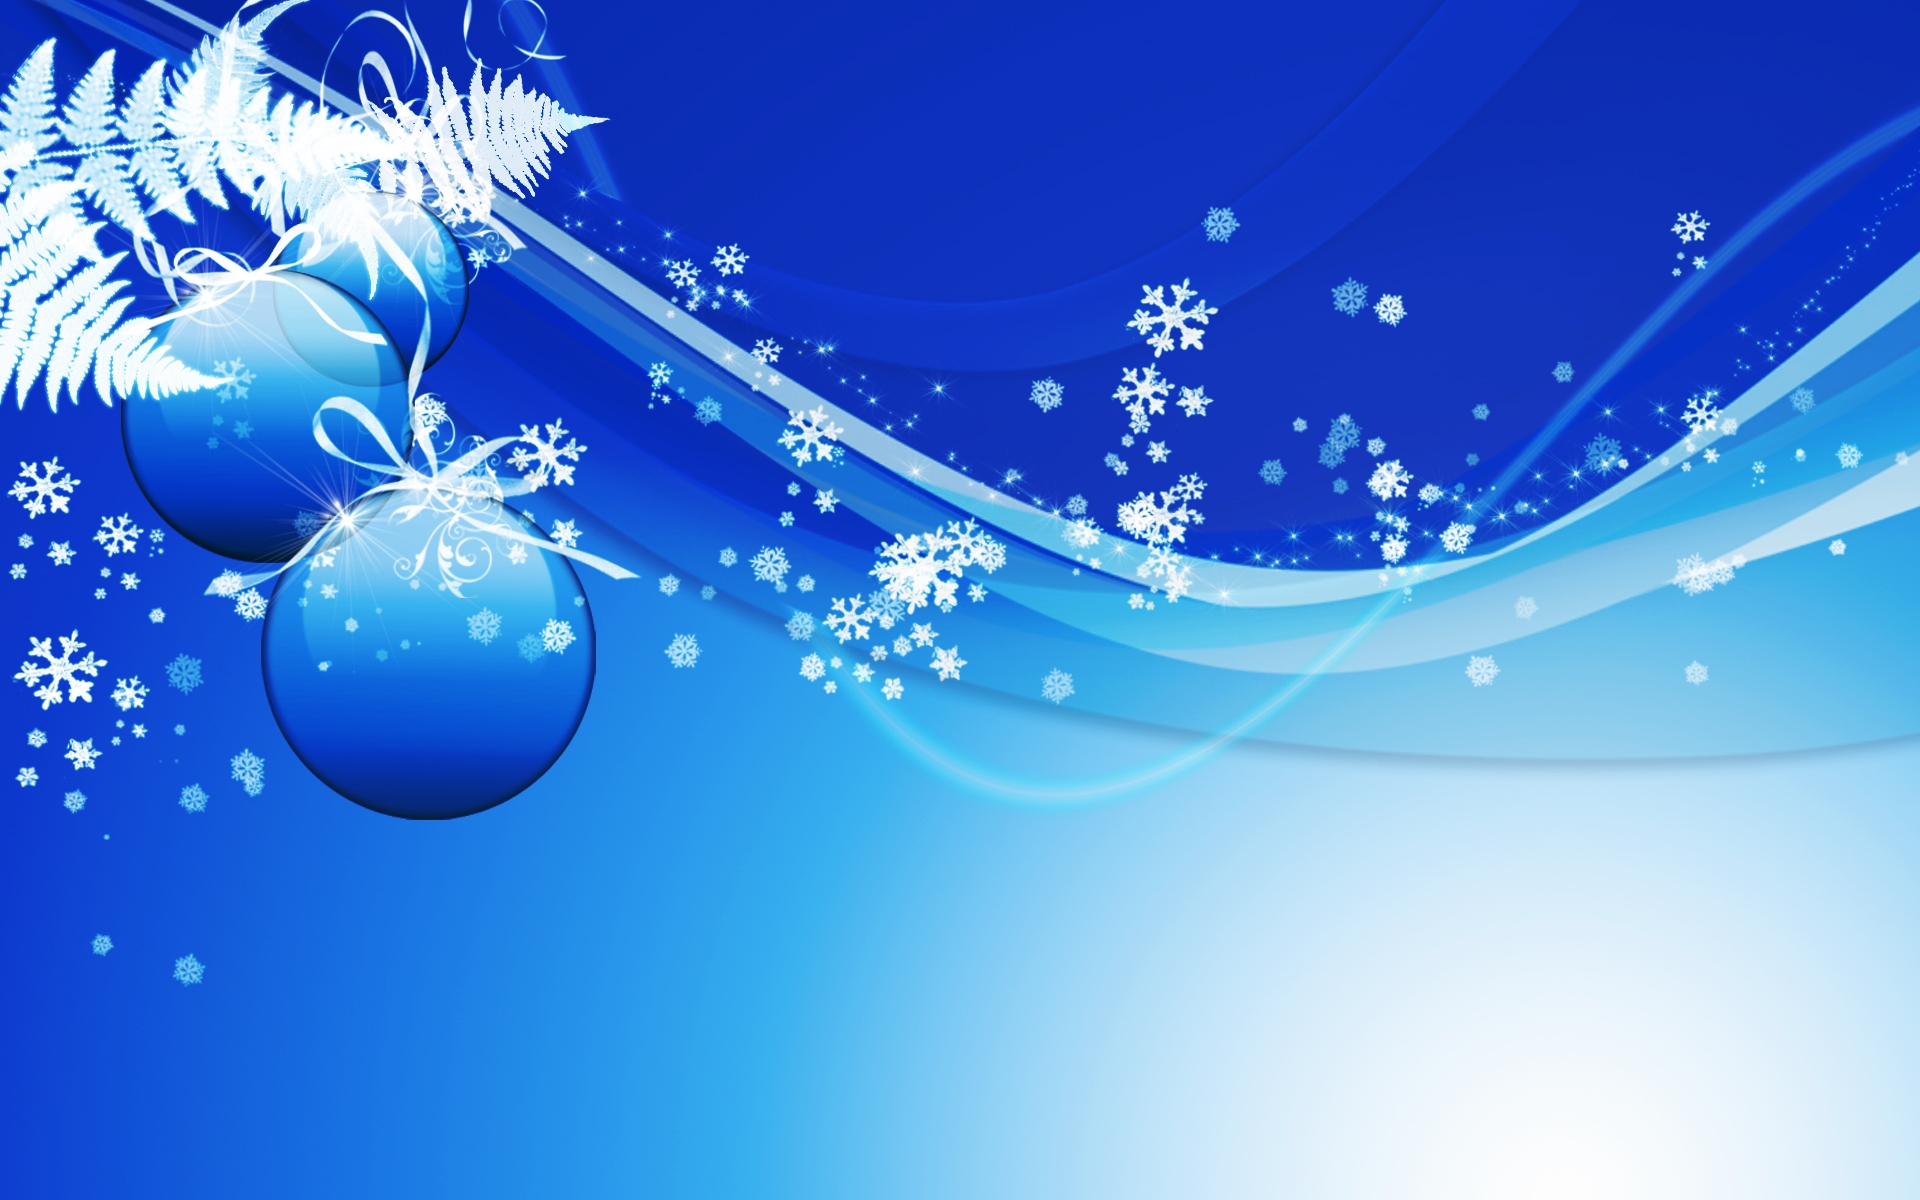 Christmas Wallpaper 21217